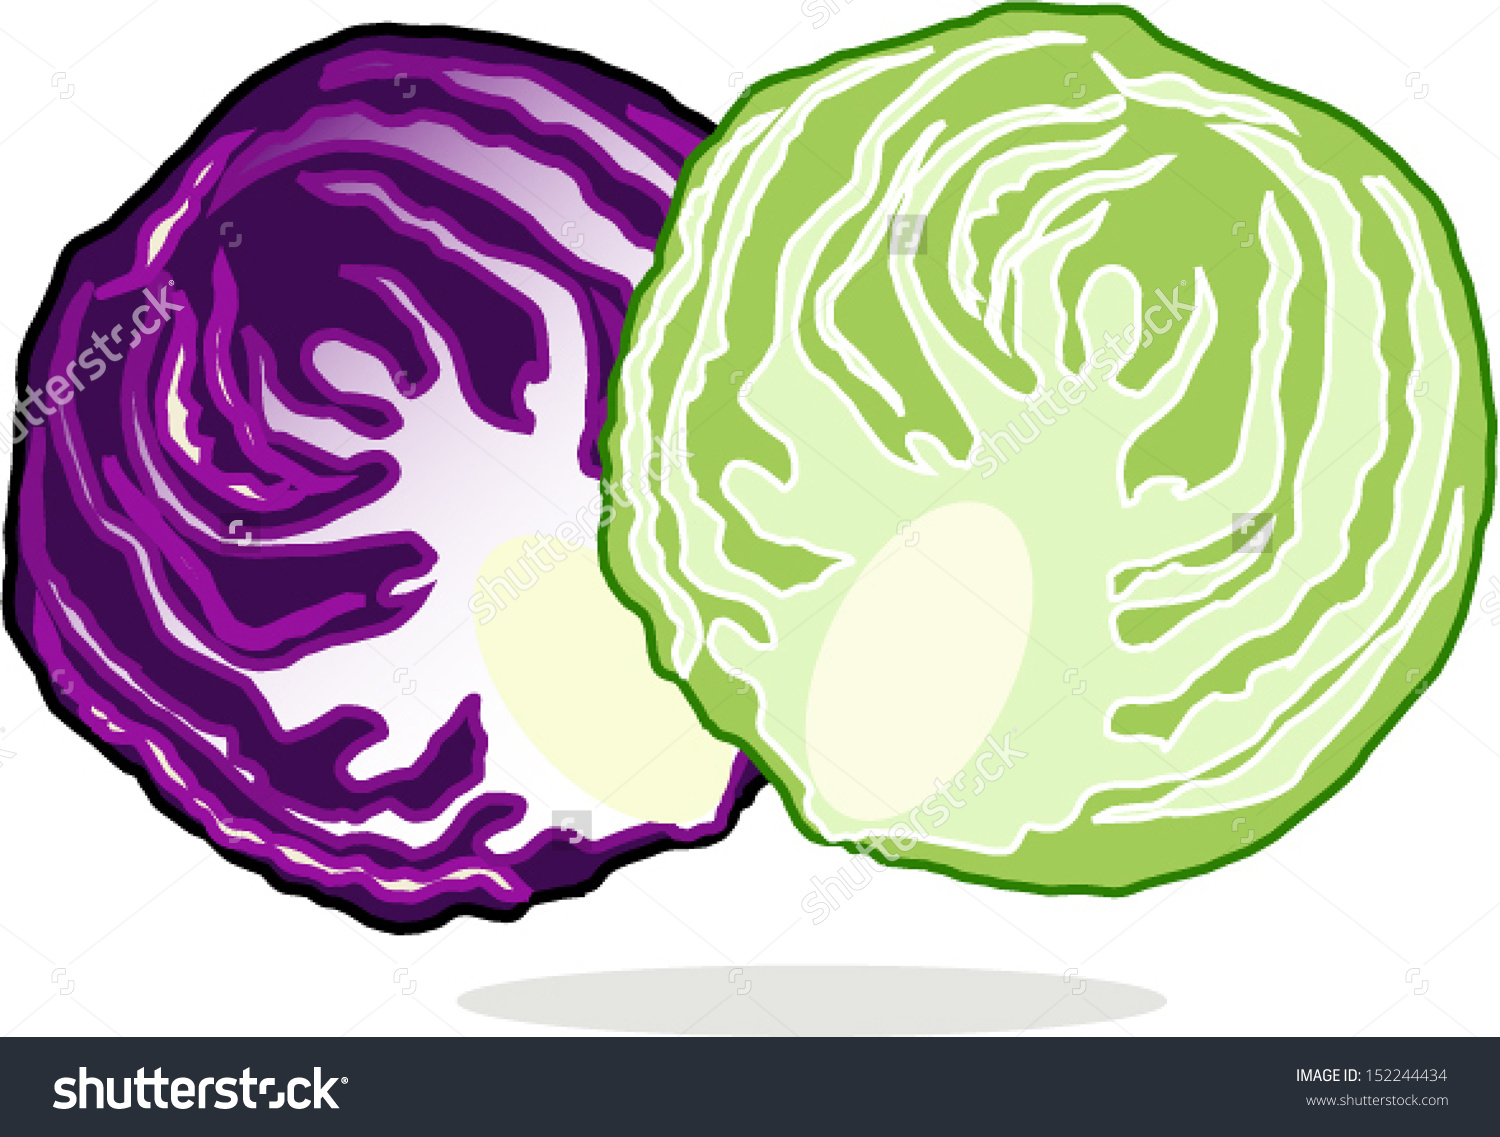 Cute clip art of. Cabbage clipart illustration